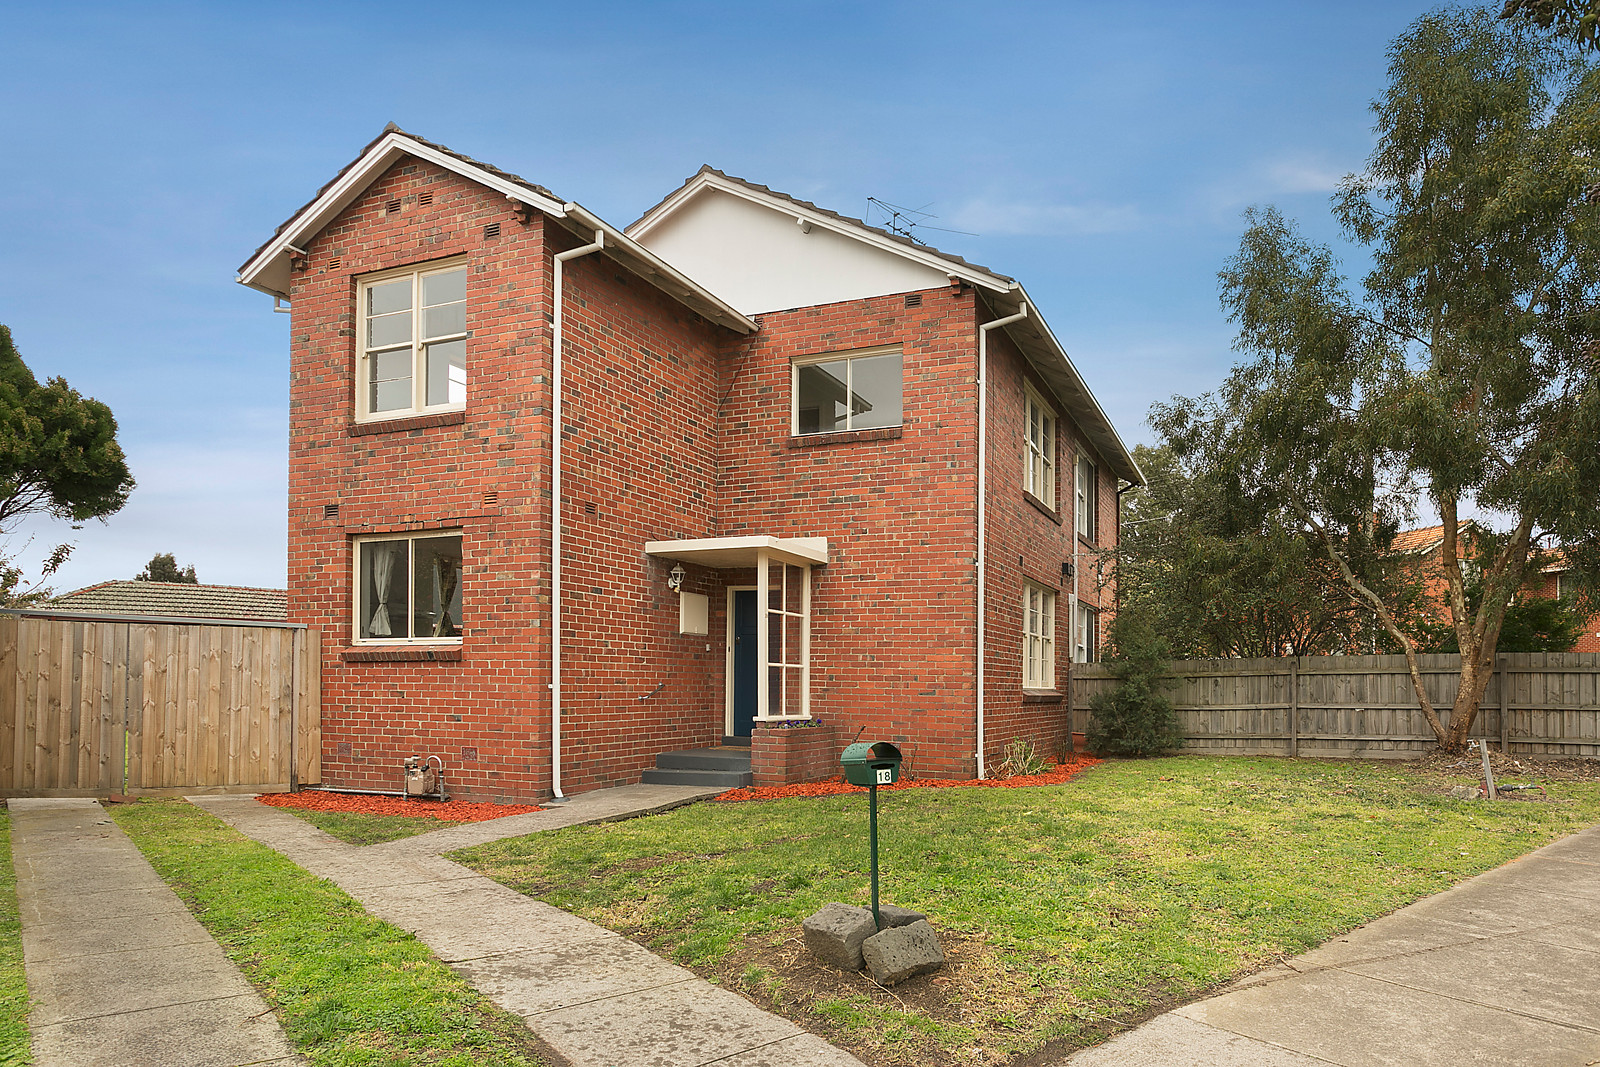 Private Sale $920,000 (under offer)